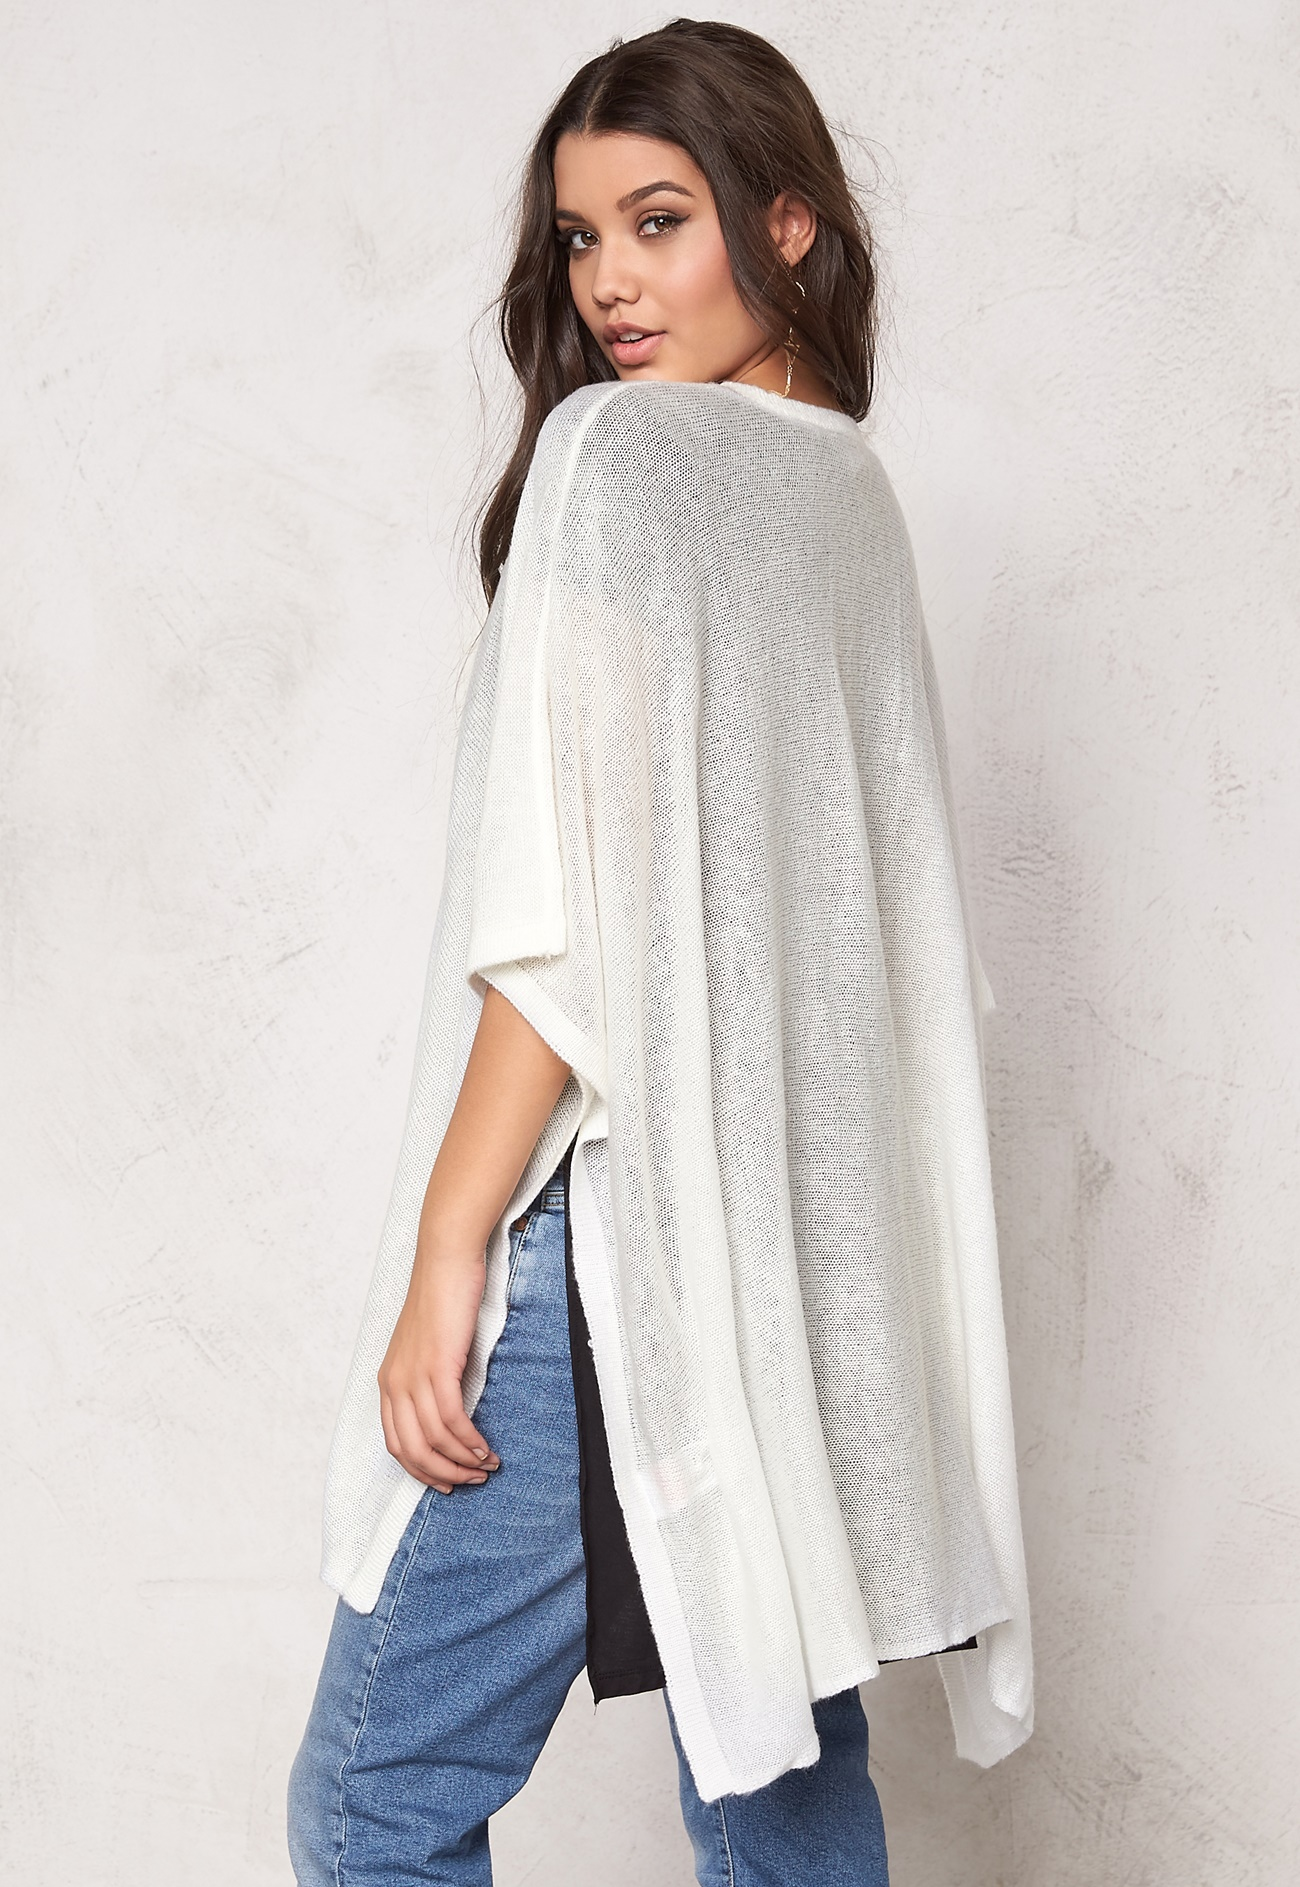 Vero Moda Knitting Yarns : Vero moda awesome knit cape snow white bubbleroom